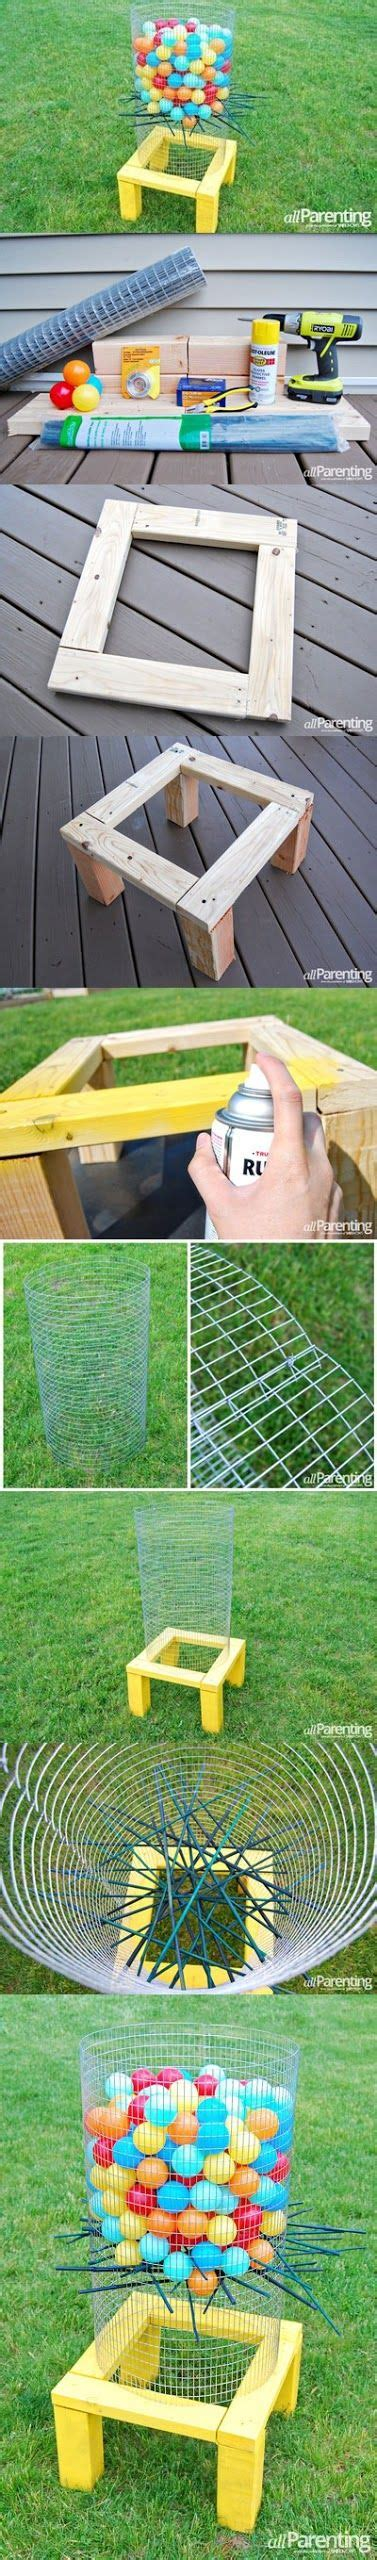 backyard kerplunk best 25 outdoor games adults ideas on pinterest outdoor games for adults yard